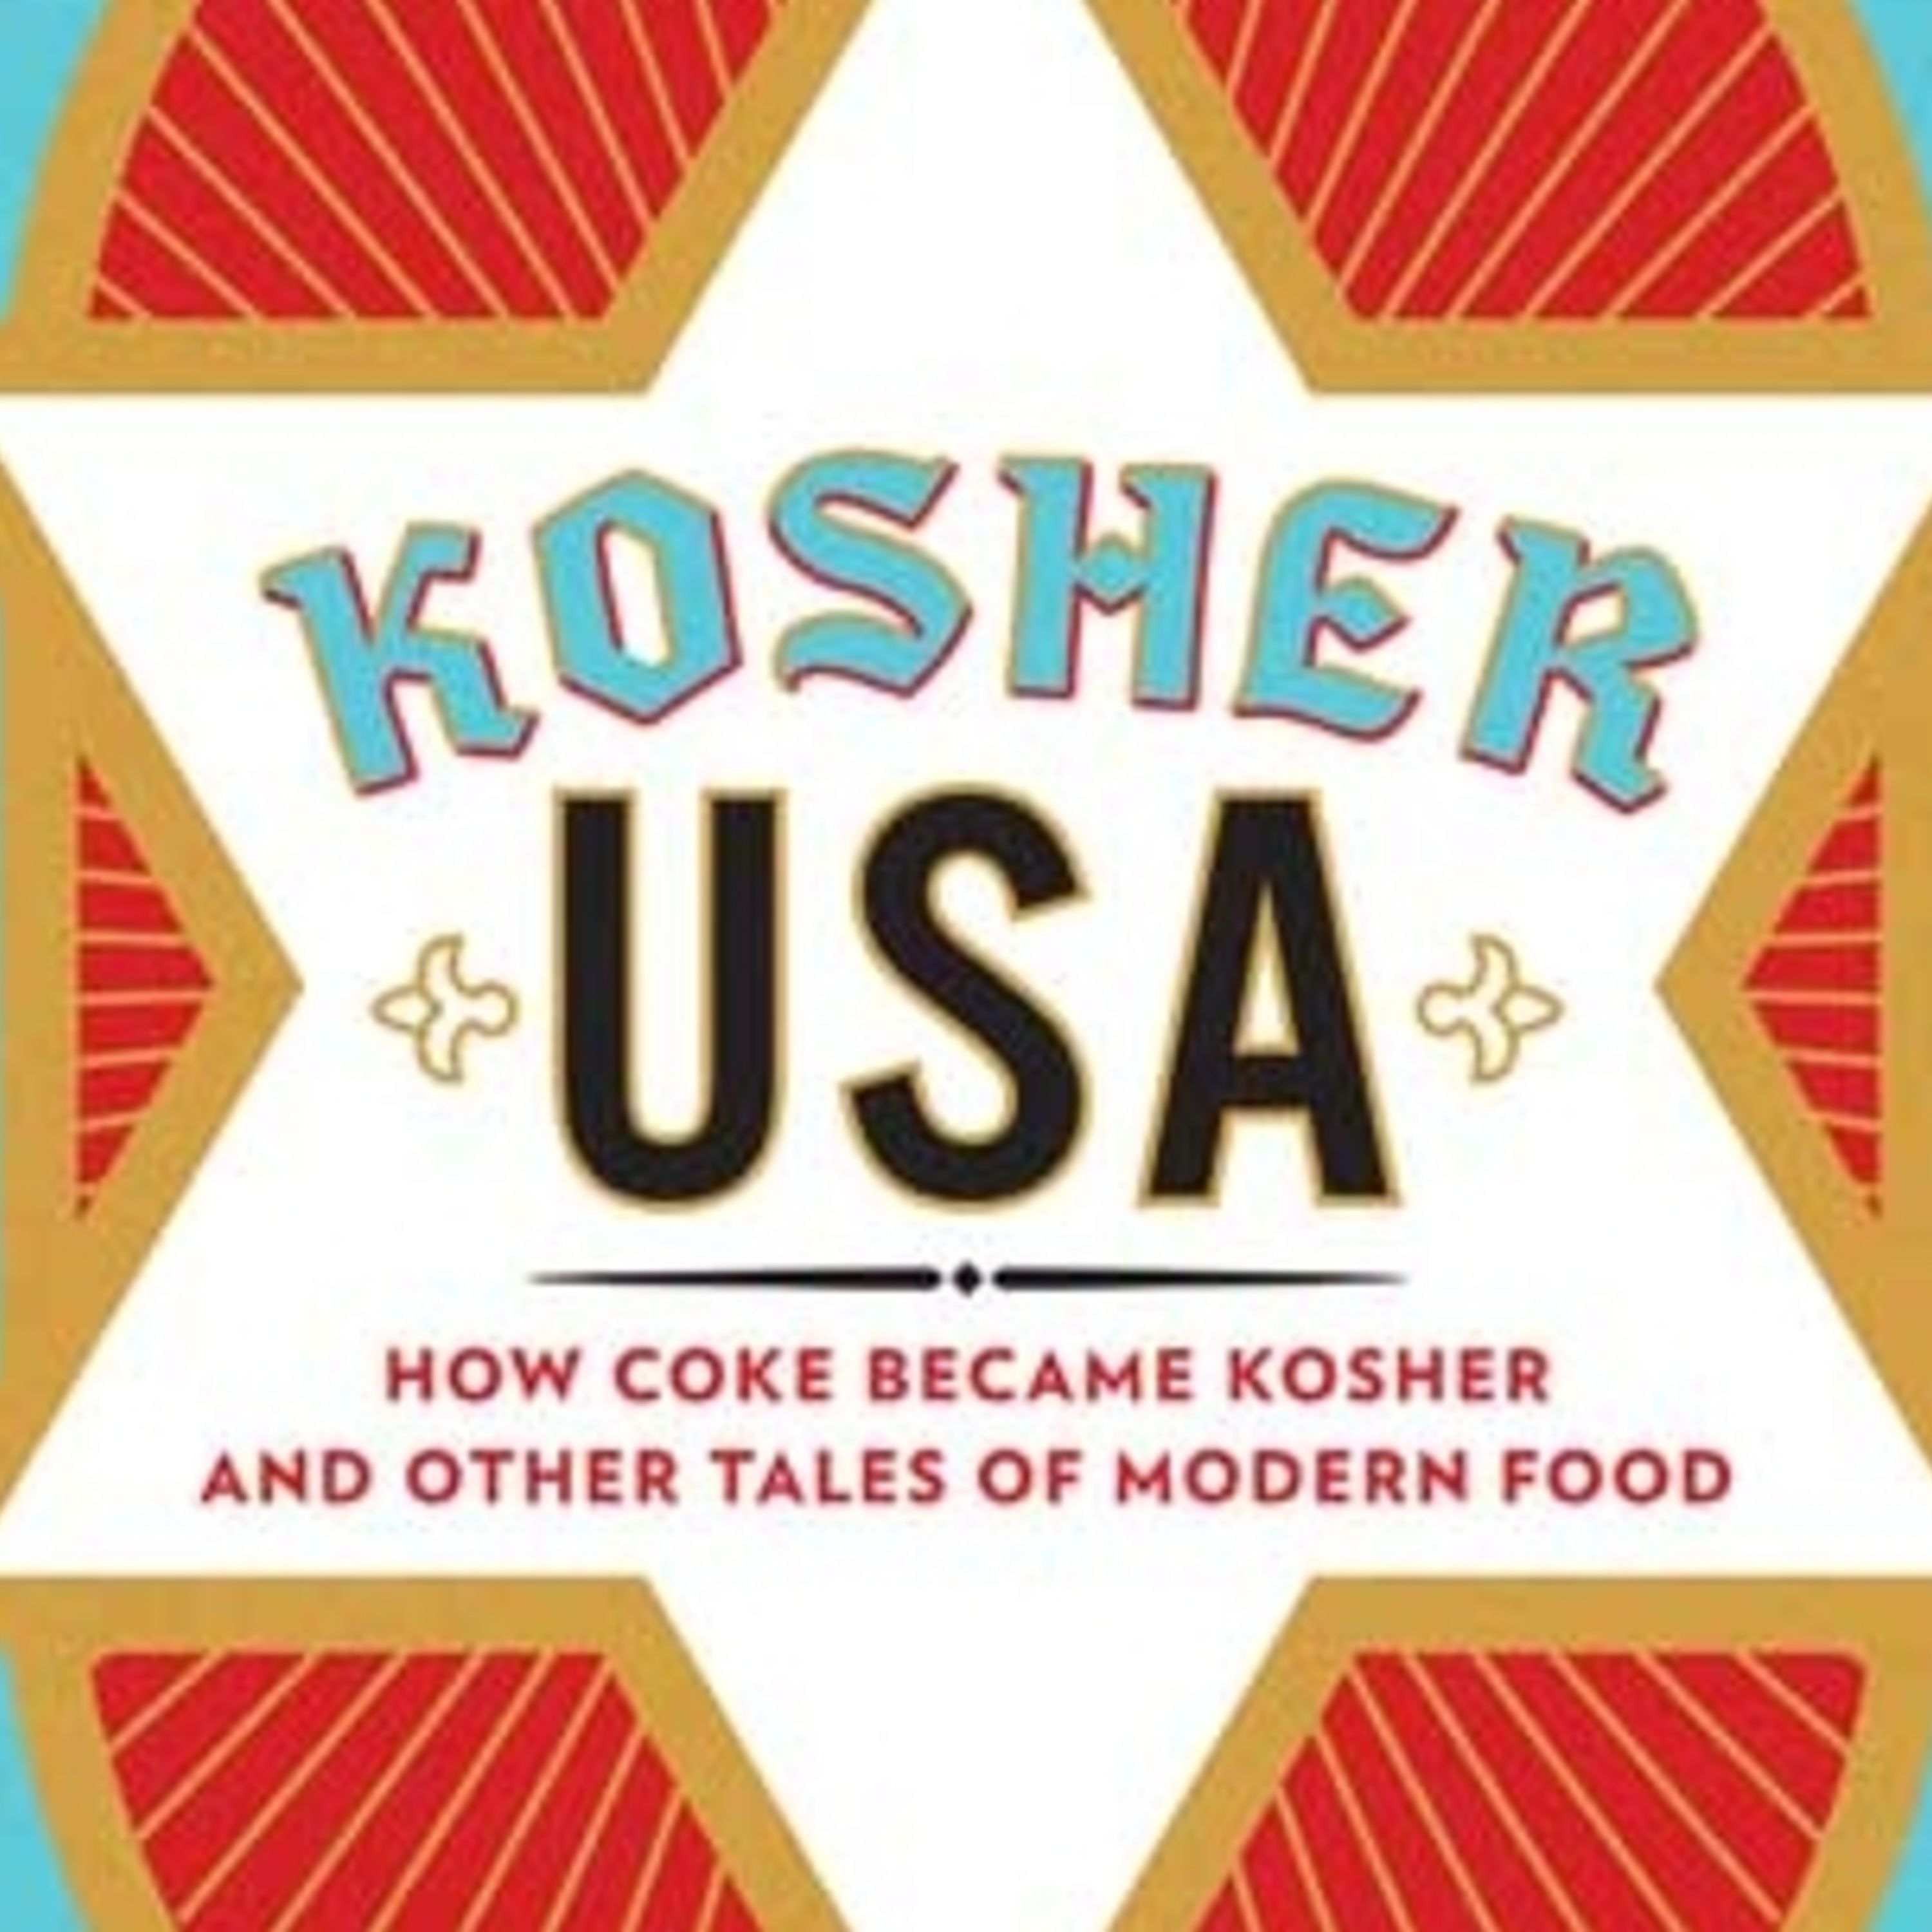 Episode 237: How Coke Became Kosher, and other tales